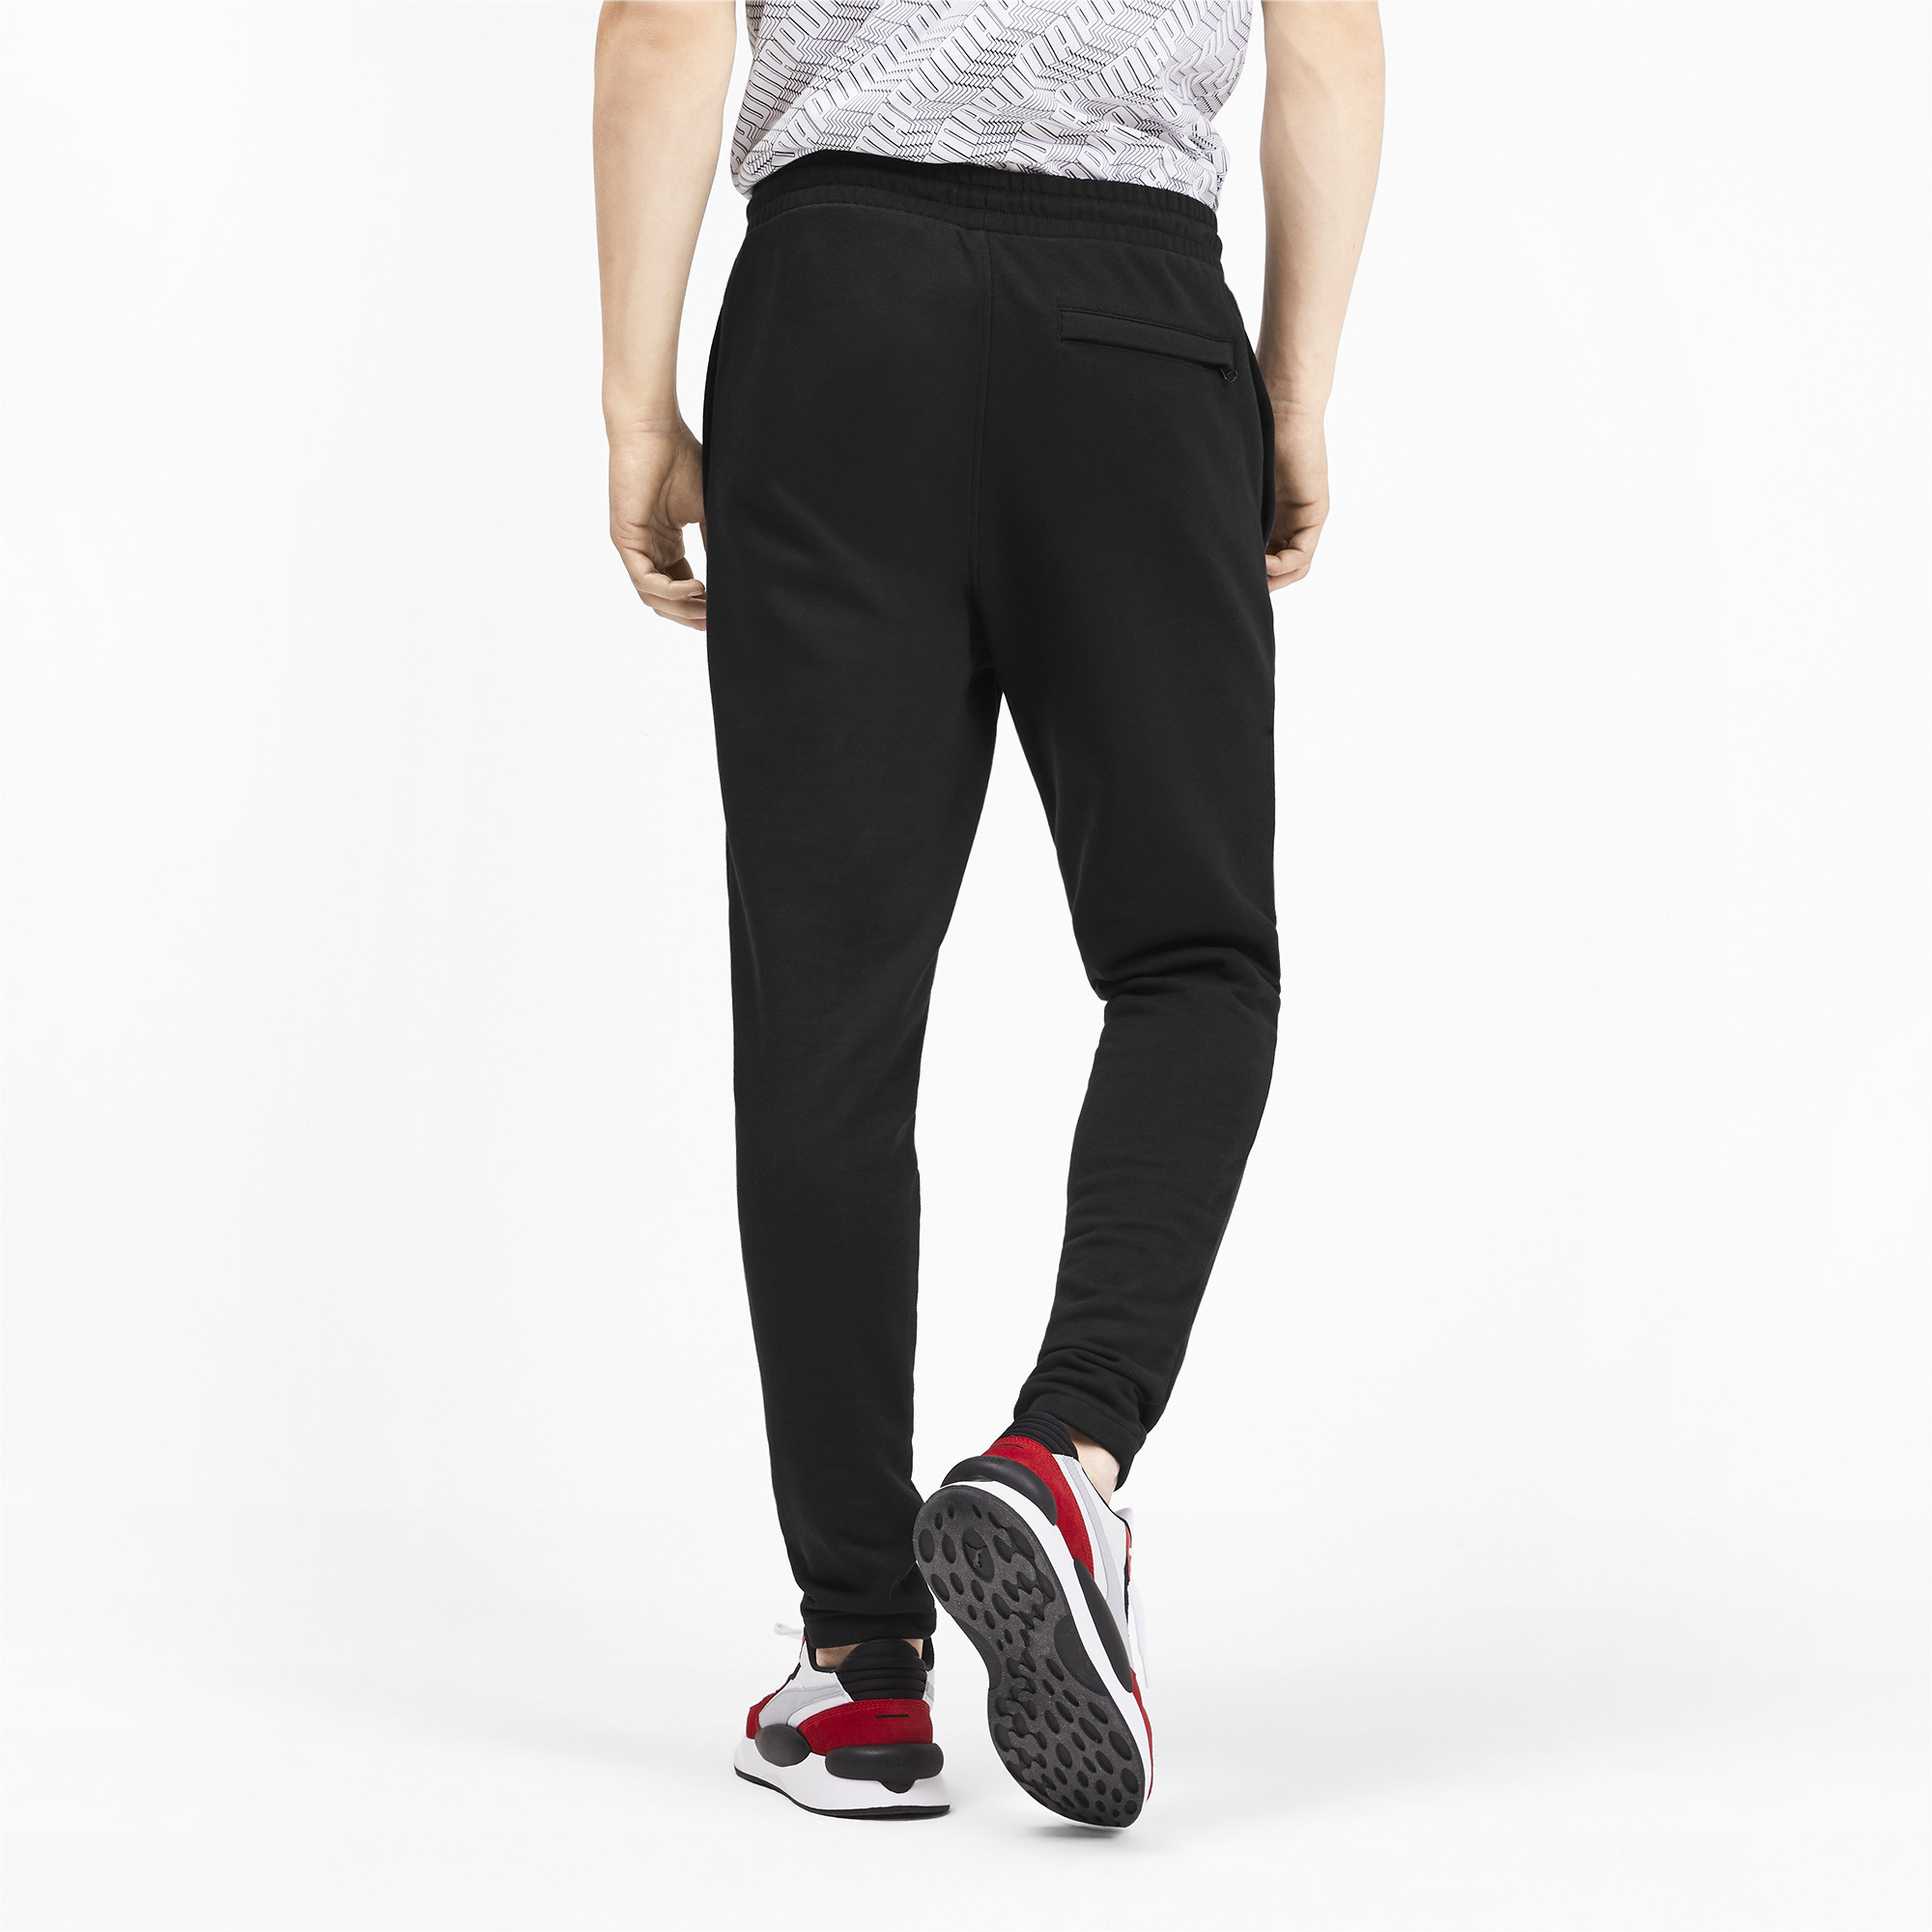 PUMA-Men-039-s-Classics-Sweatpants thumbnail 10